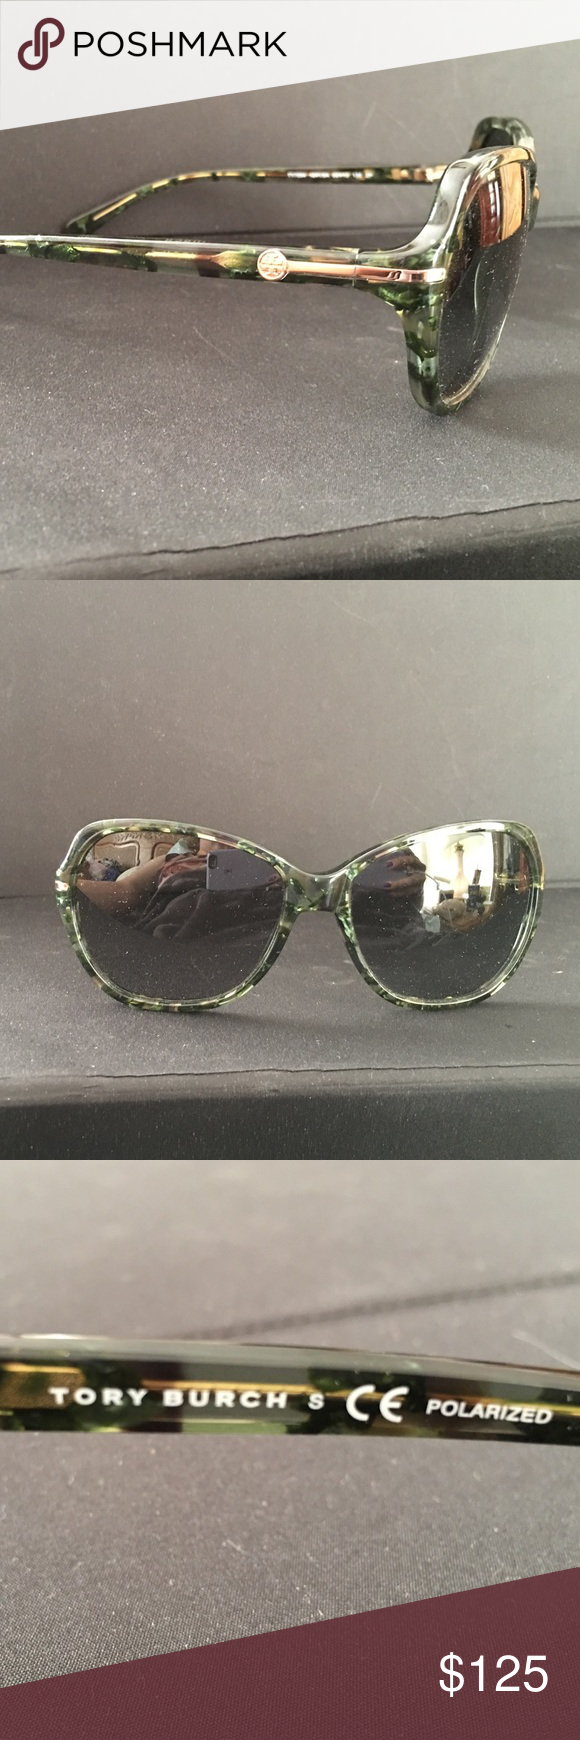 49099183d1c8 FLASH SALE ‼️Tory Burch POLARIZED sunglasses NEW Gorgeous green tortoise  marble Tory Burch sunglasses. NEW. Size 58-15-130. These lenses are  POLARIZED.